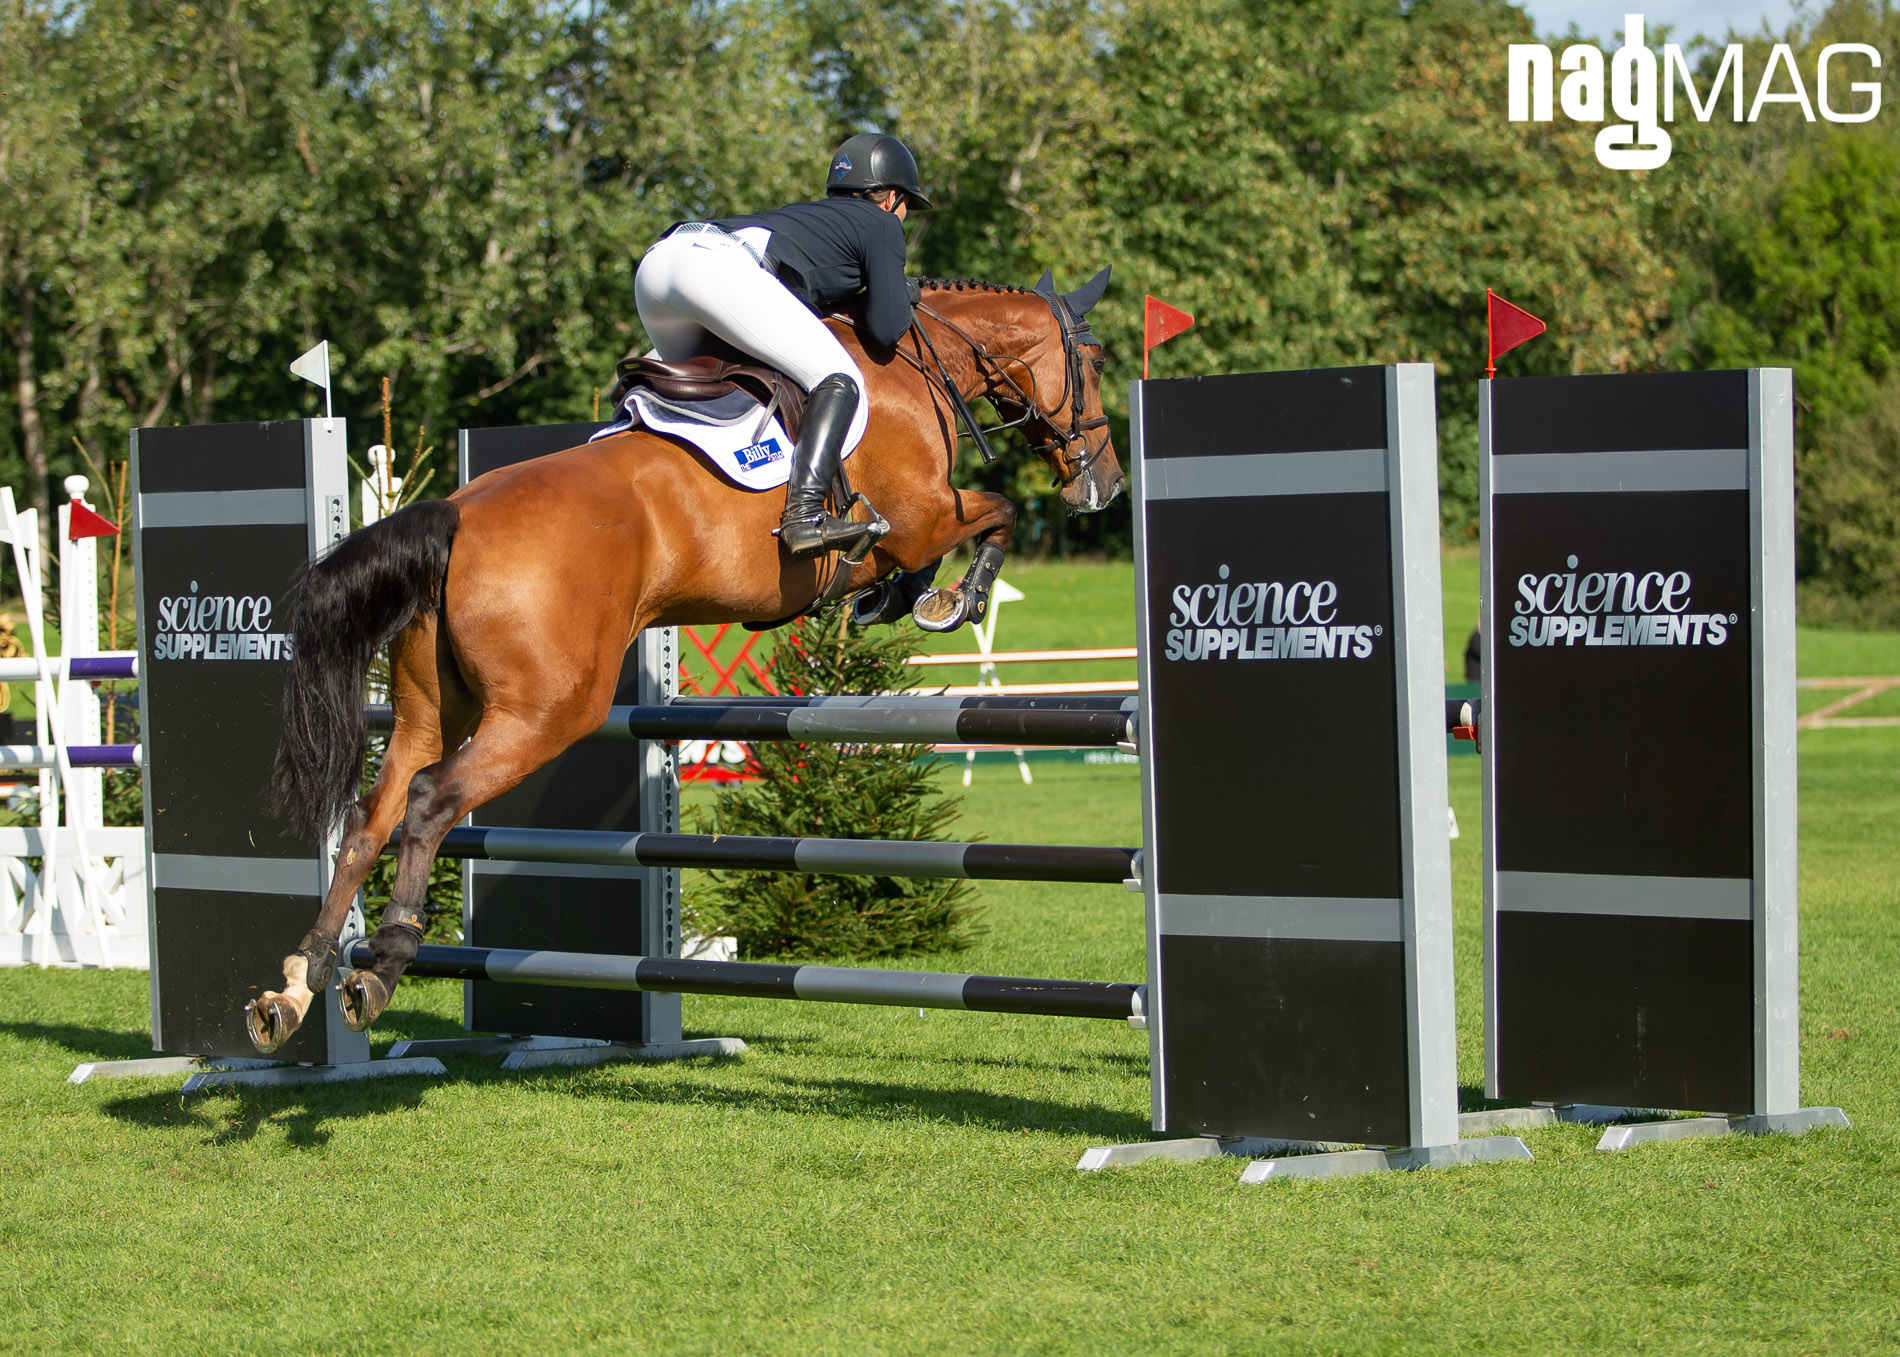 Winner - Lucy Townley on BILLY VITAINI14